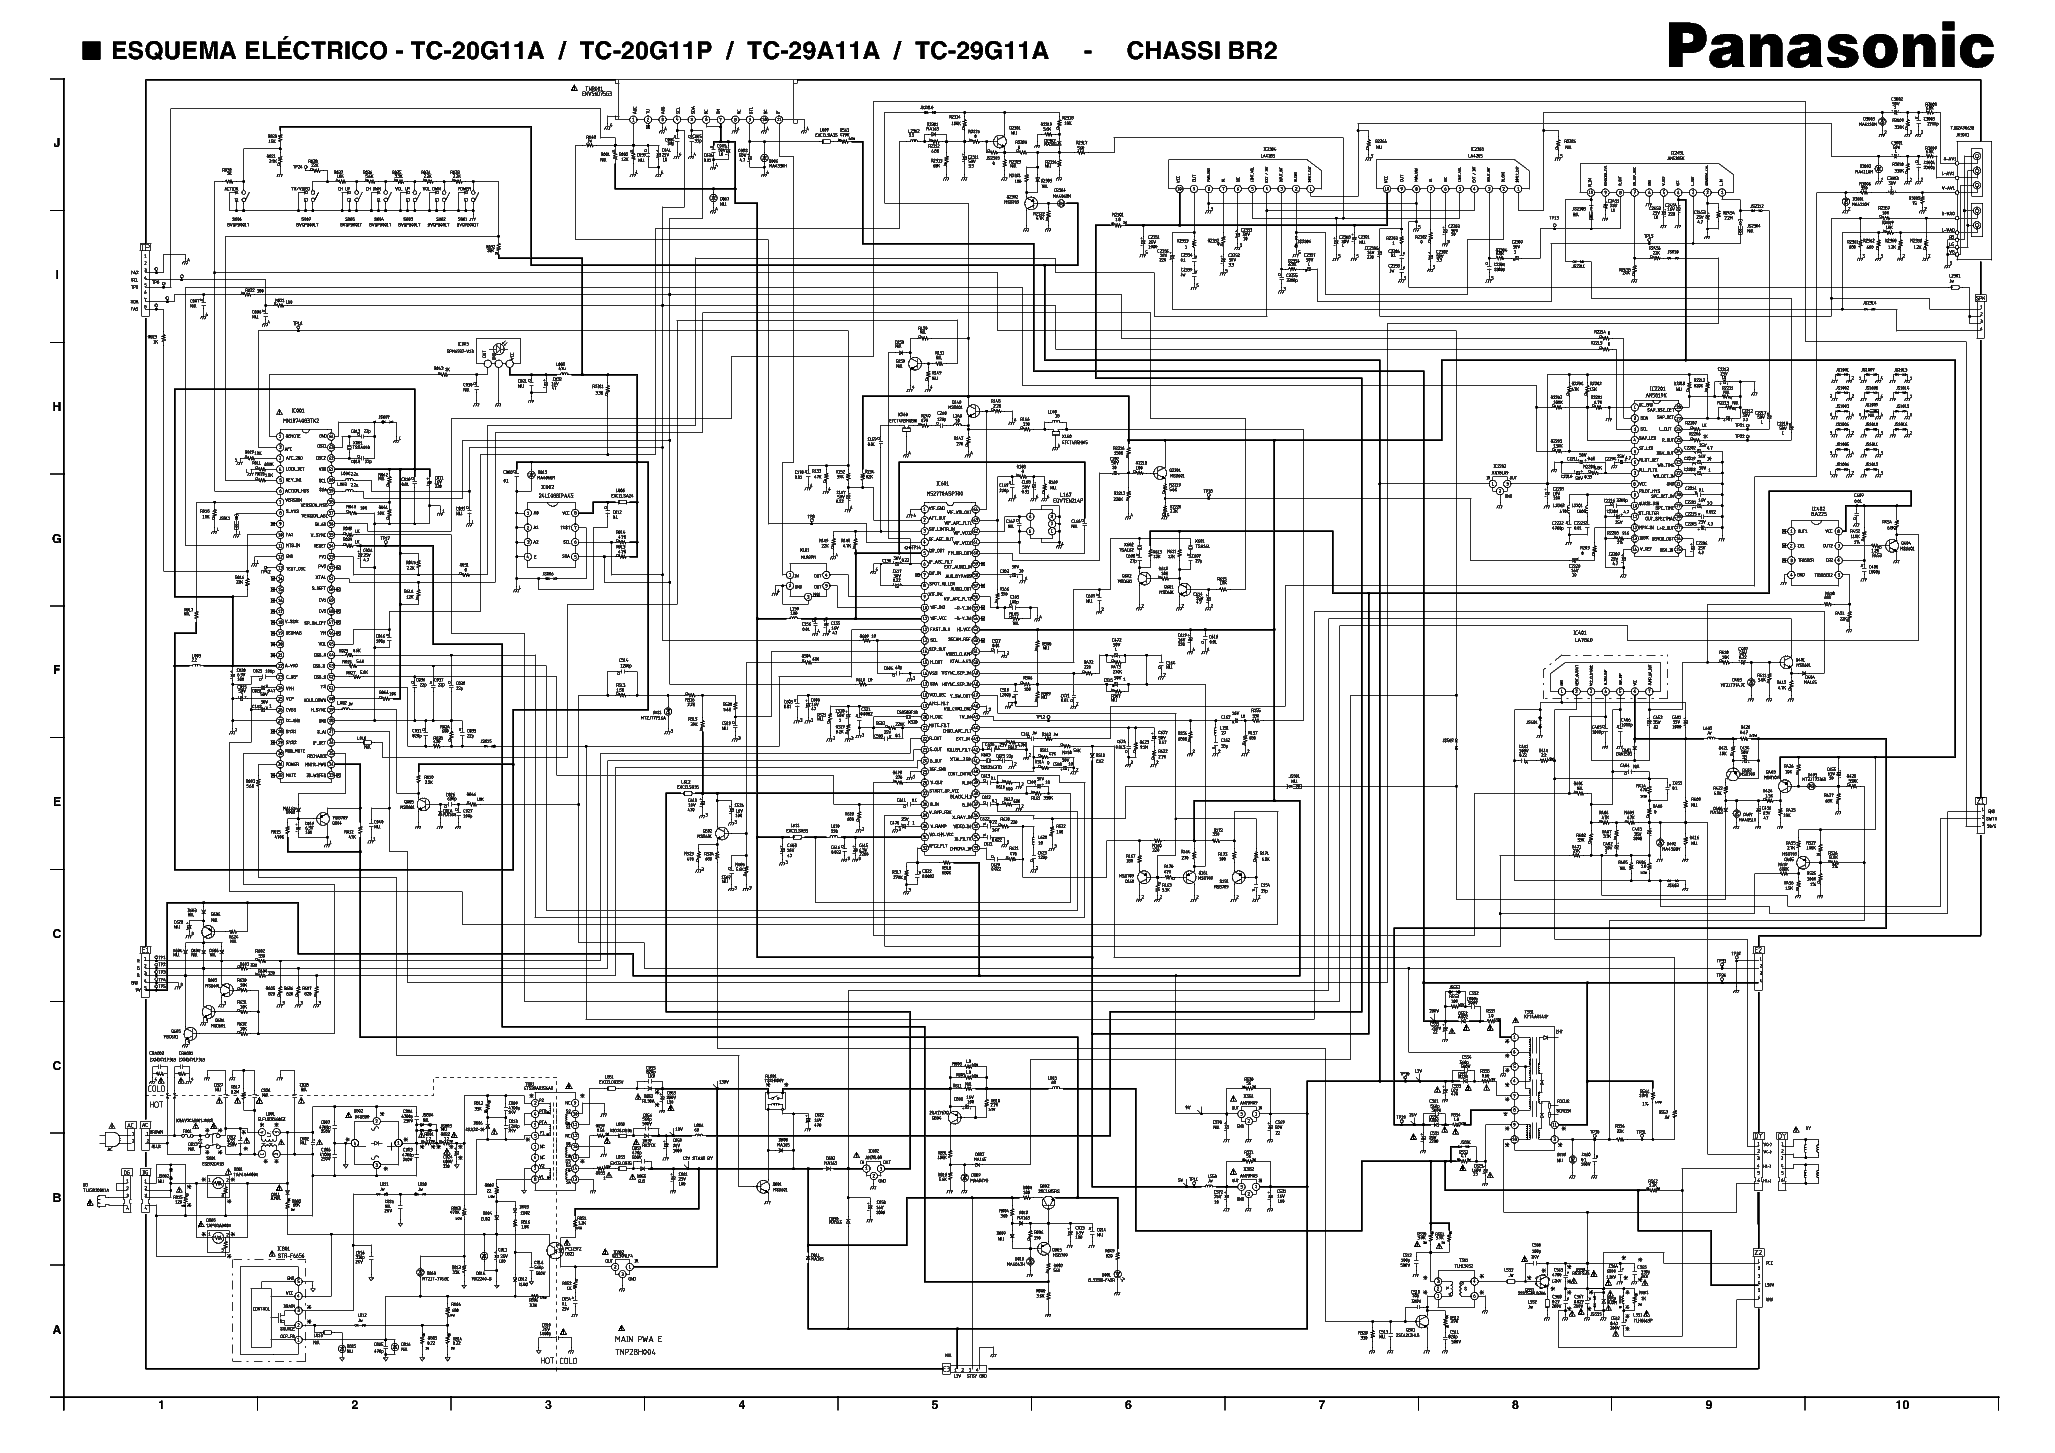 Free Electrical Drawing At For Personal Use Triumph Spitfire Overdrive Gearbox Wiring Diagram Download 2055x1453 Panasonic Tv Circuit Zen Components